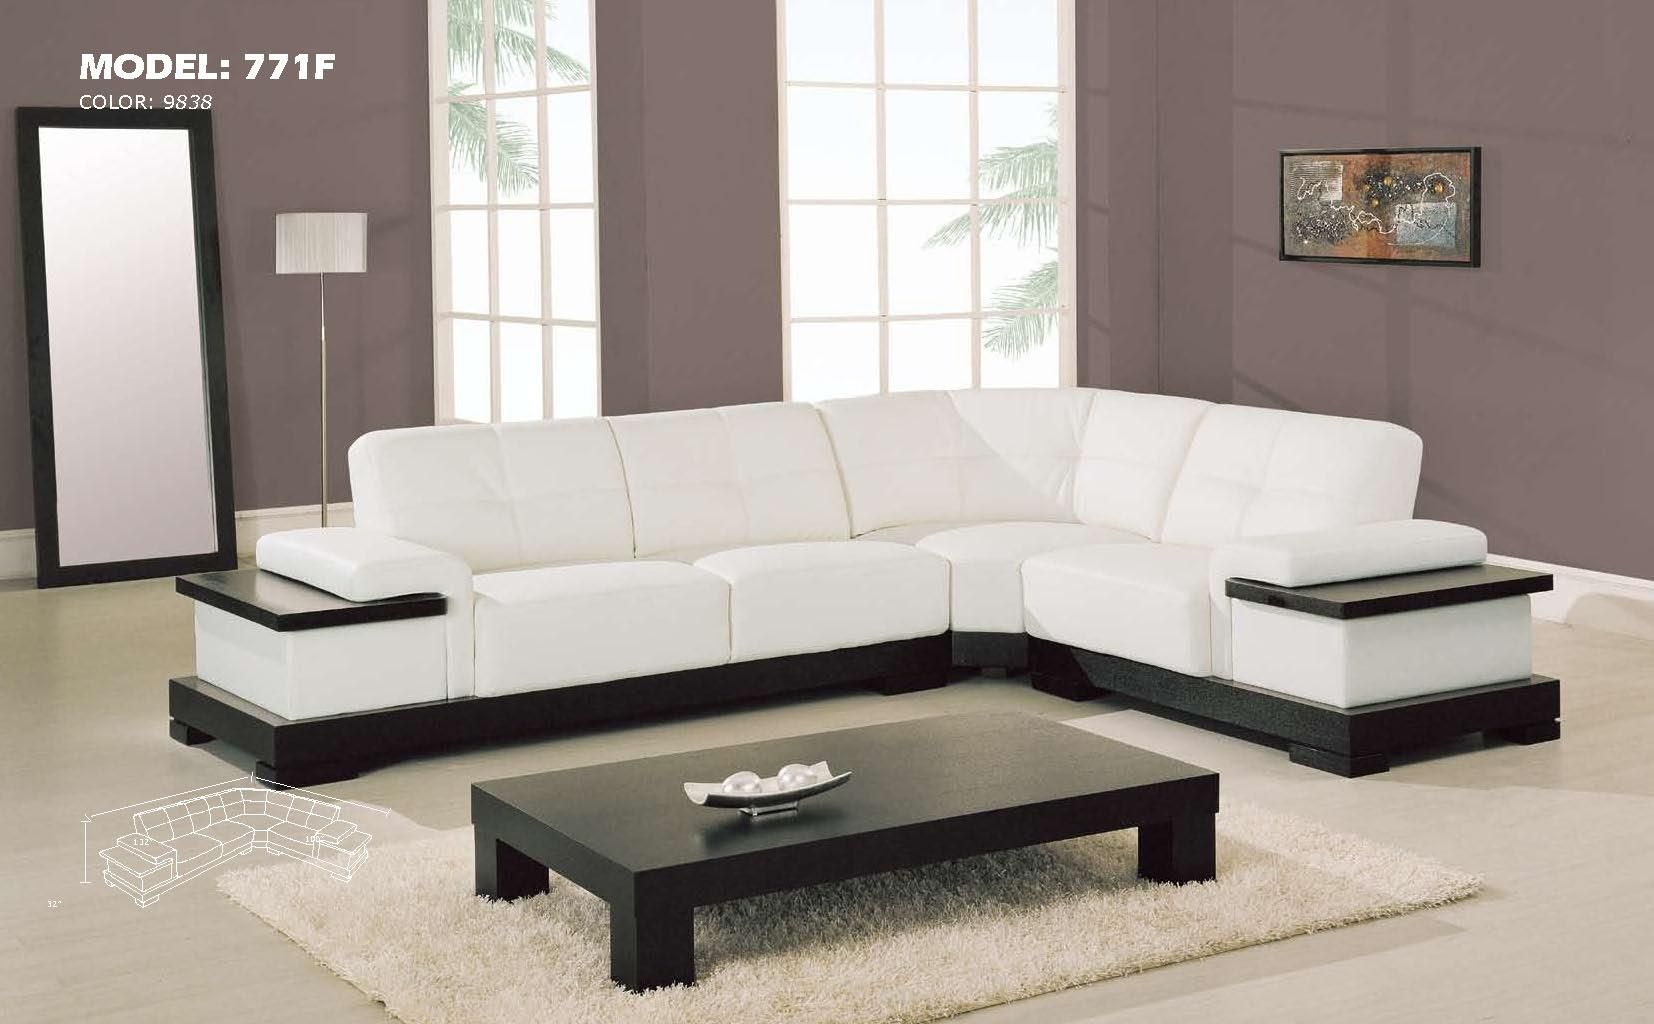 L Shape Sofa Set Designs In Hyderabad Contemporary Sectional L Shaped Sofa Design Ideas For